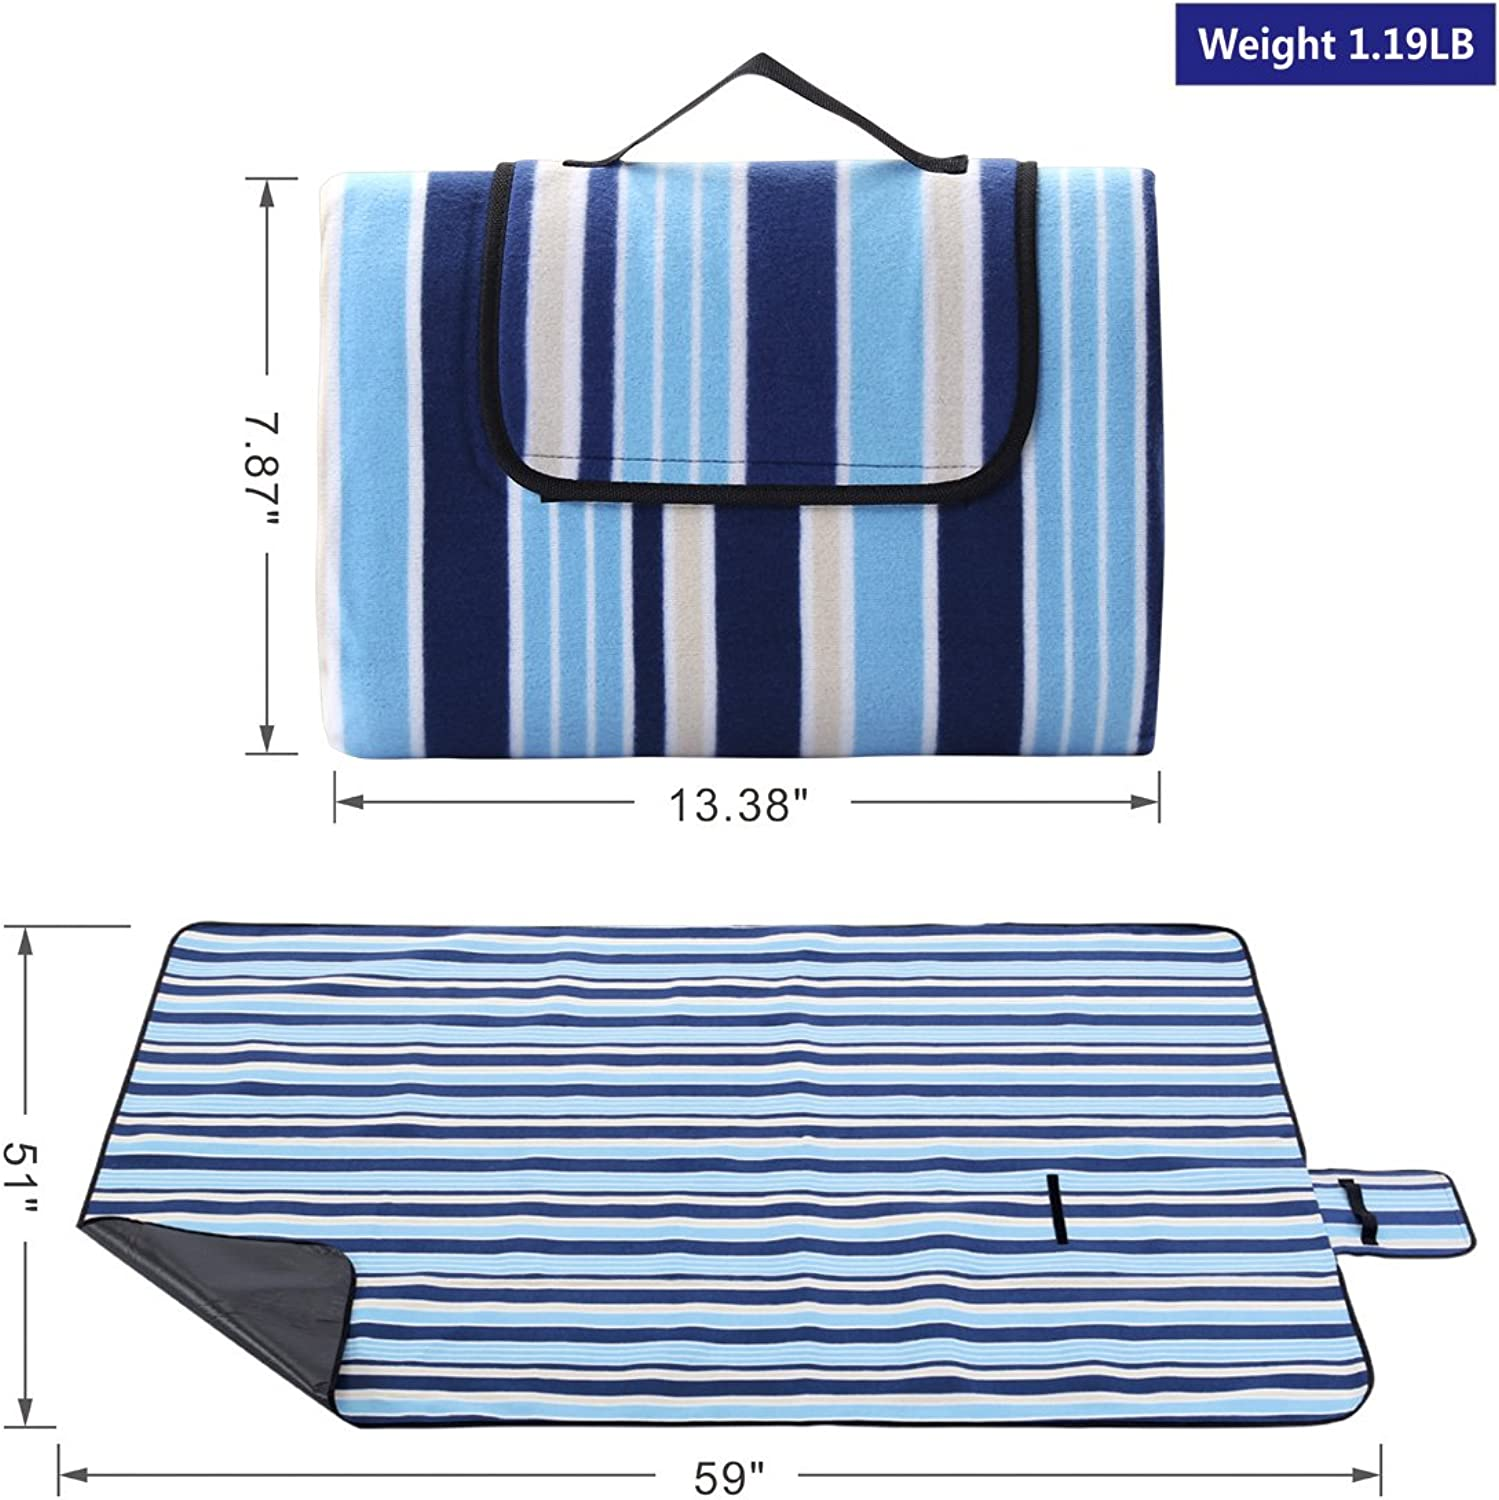 4f79b9162b28a Portable Outdoor Picnic Blanket (59 x 51 59 x 79 blueee Stripe Red ...